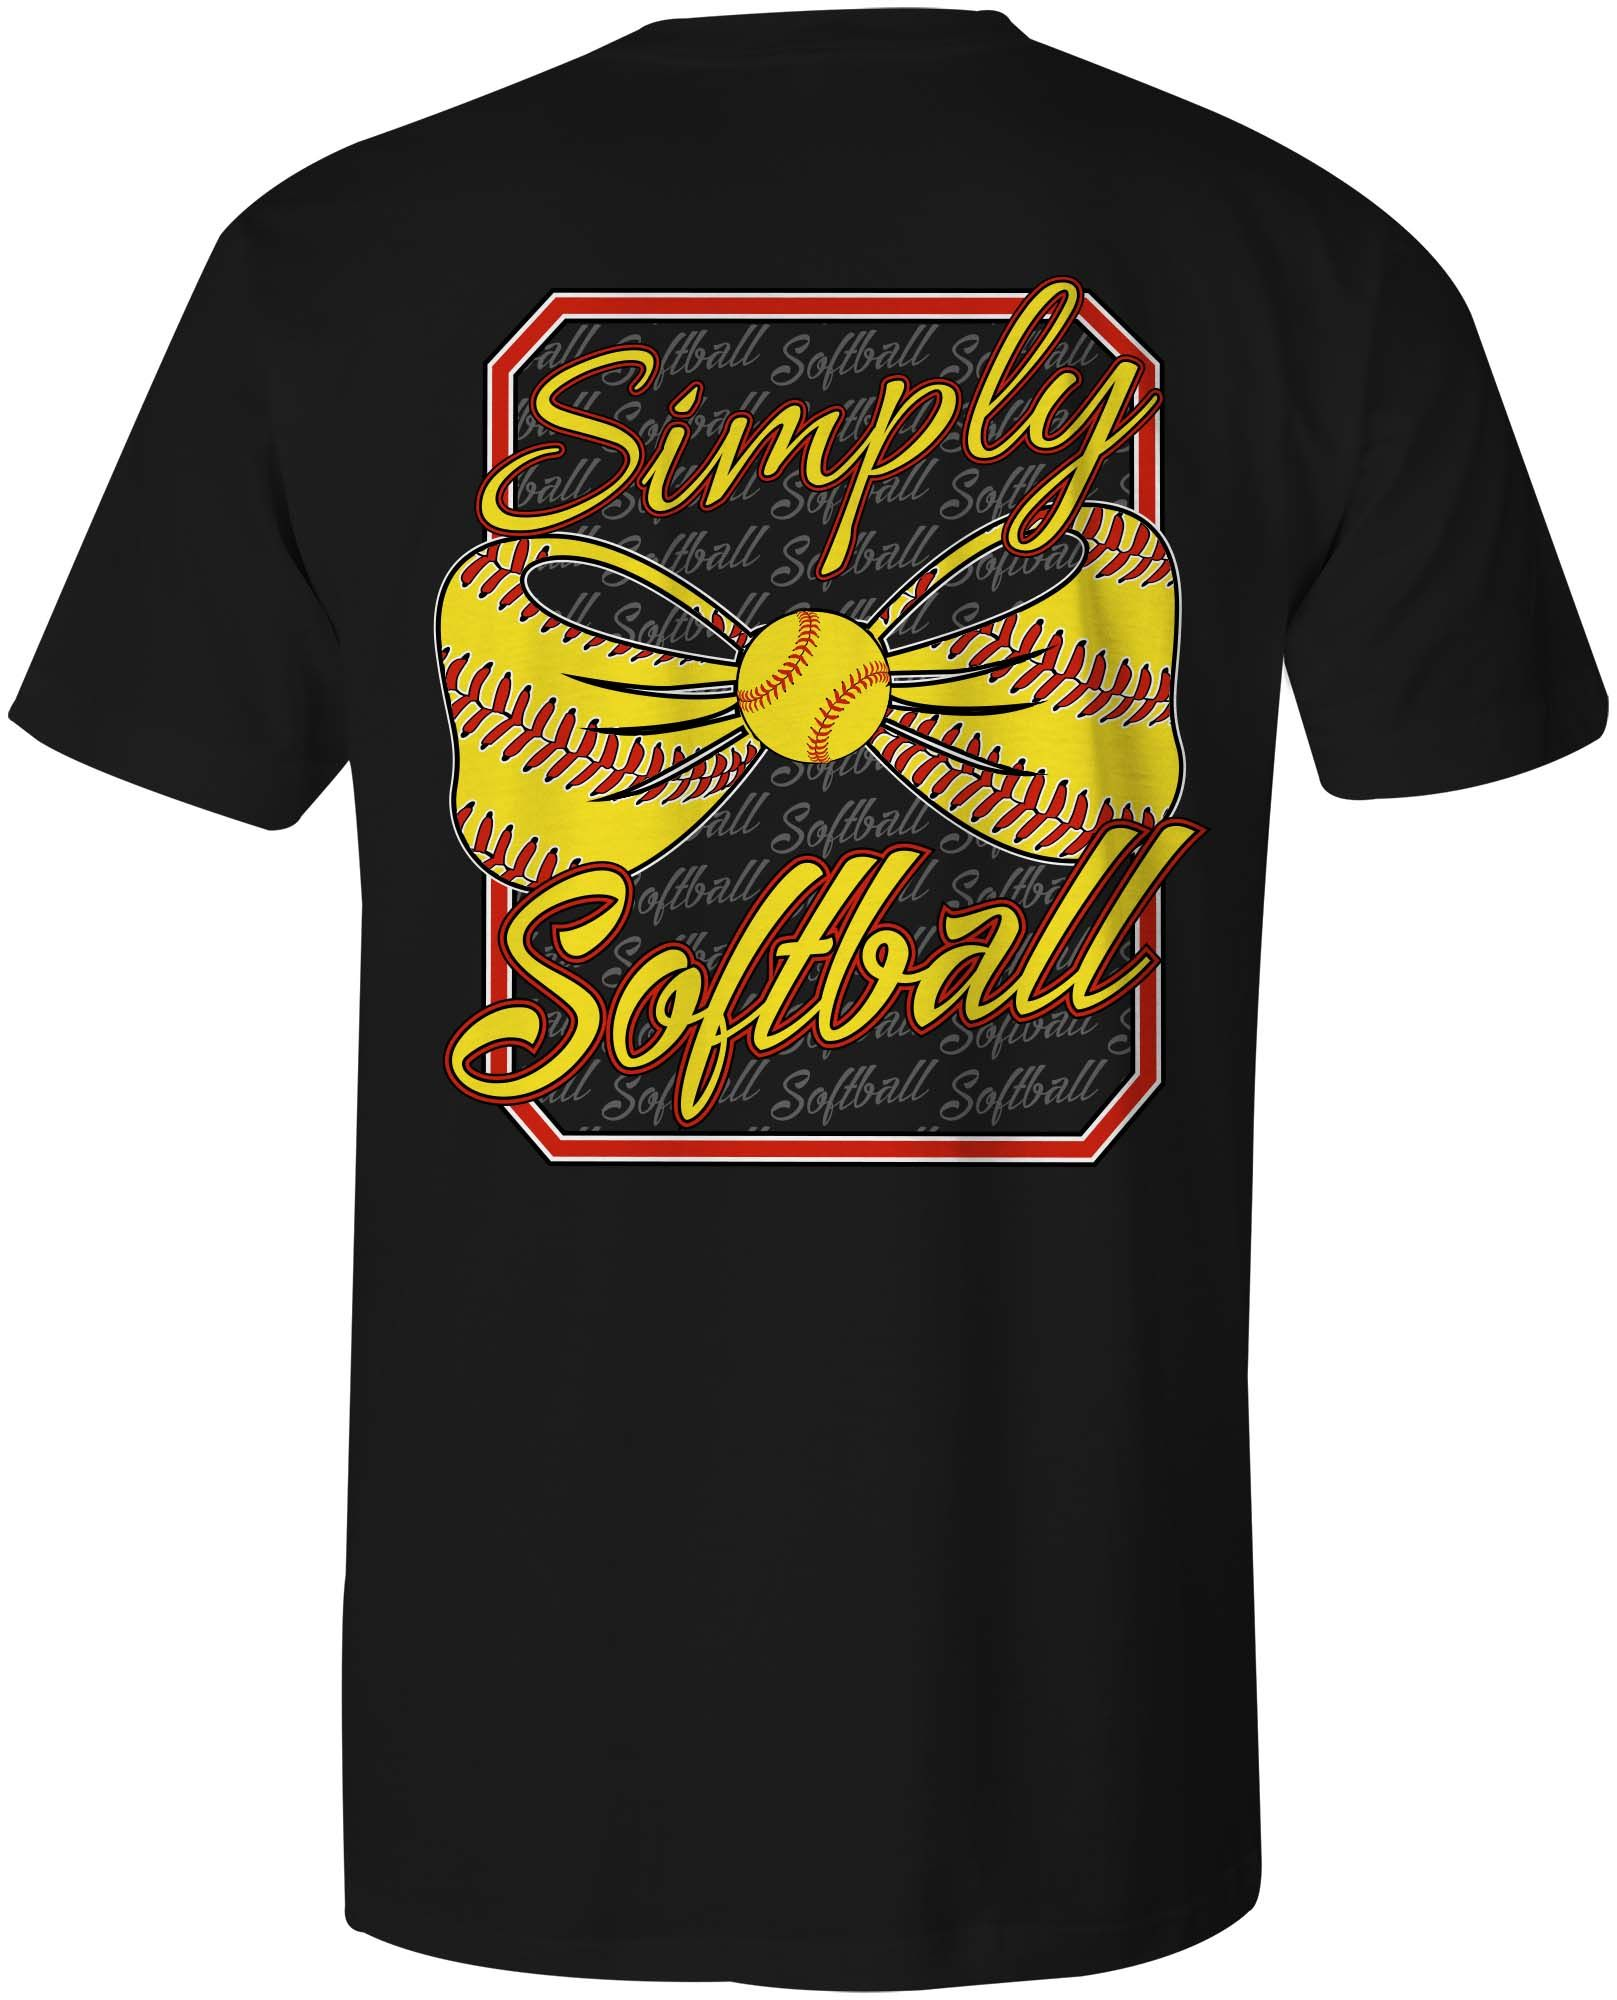 Simply Softball Shirt That We Designed And Printed If You Can Put